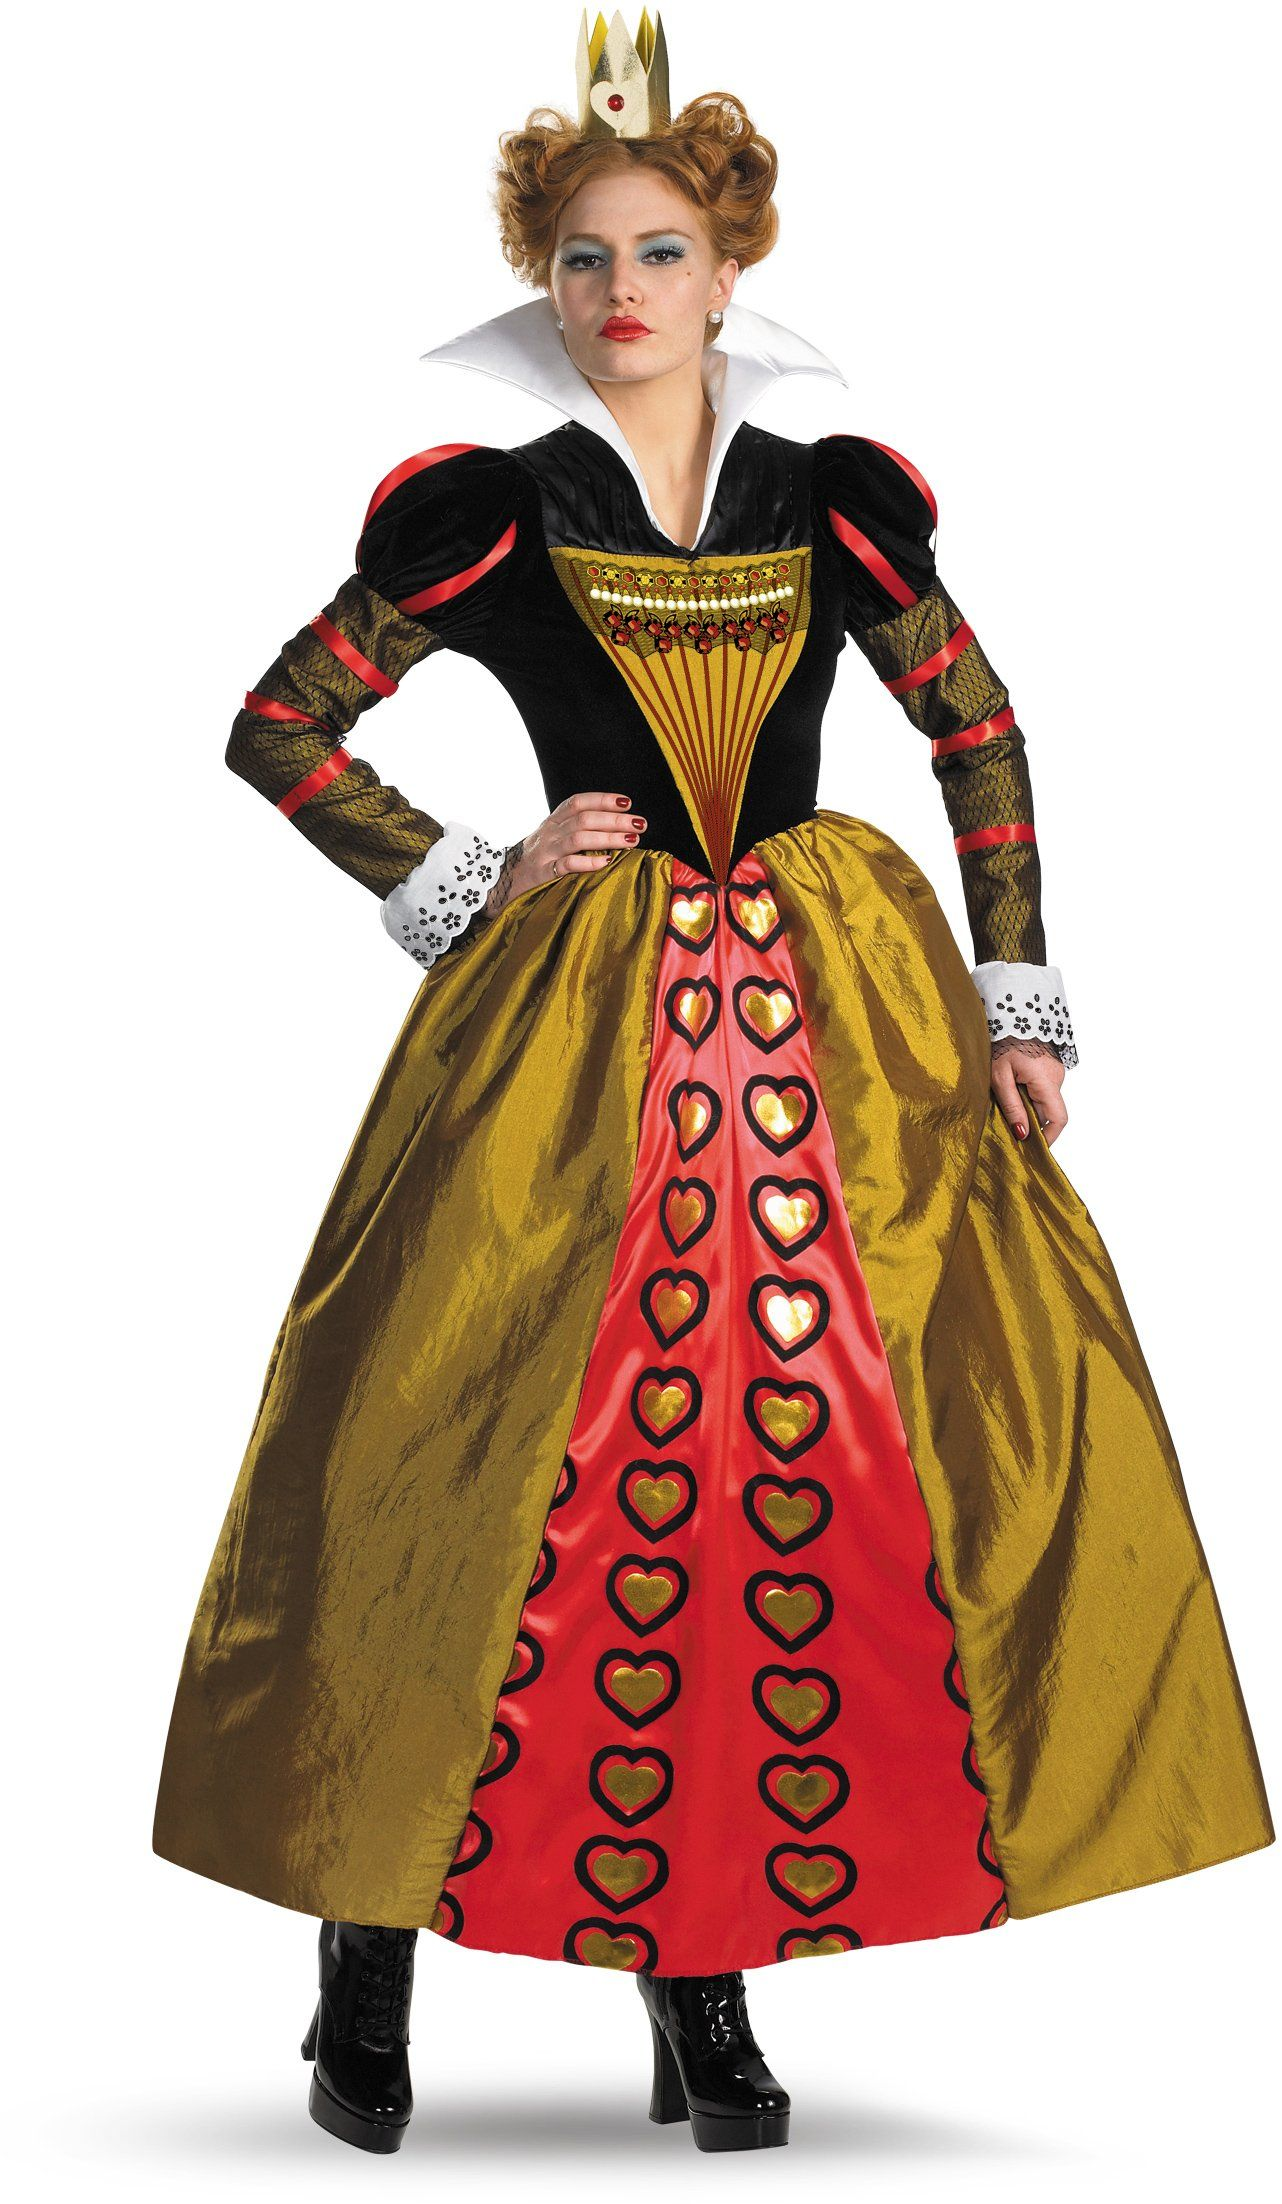 Alice In Wonderland Movie Deluxe Red Queen Adult Costume from  Buycostumes.com